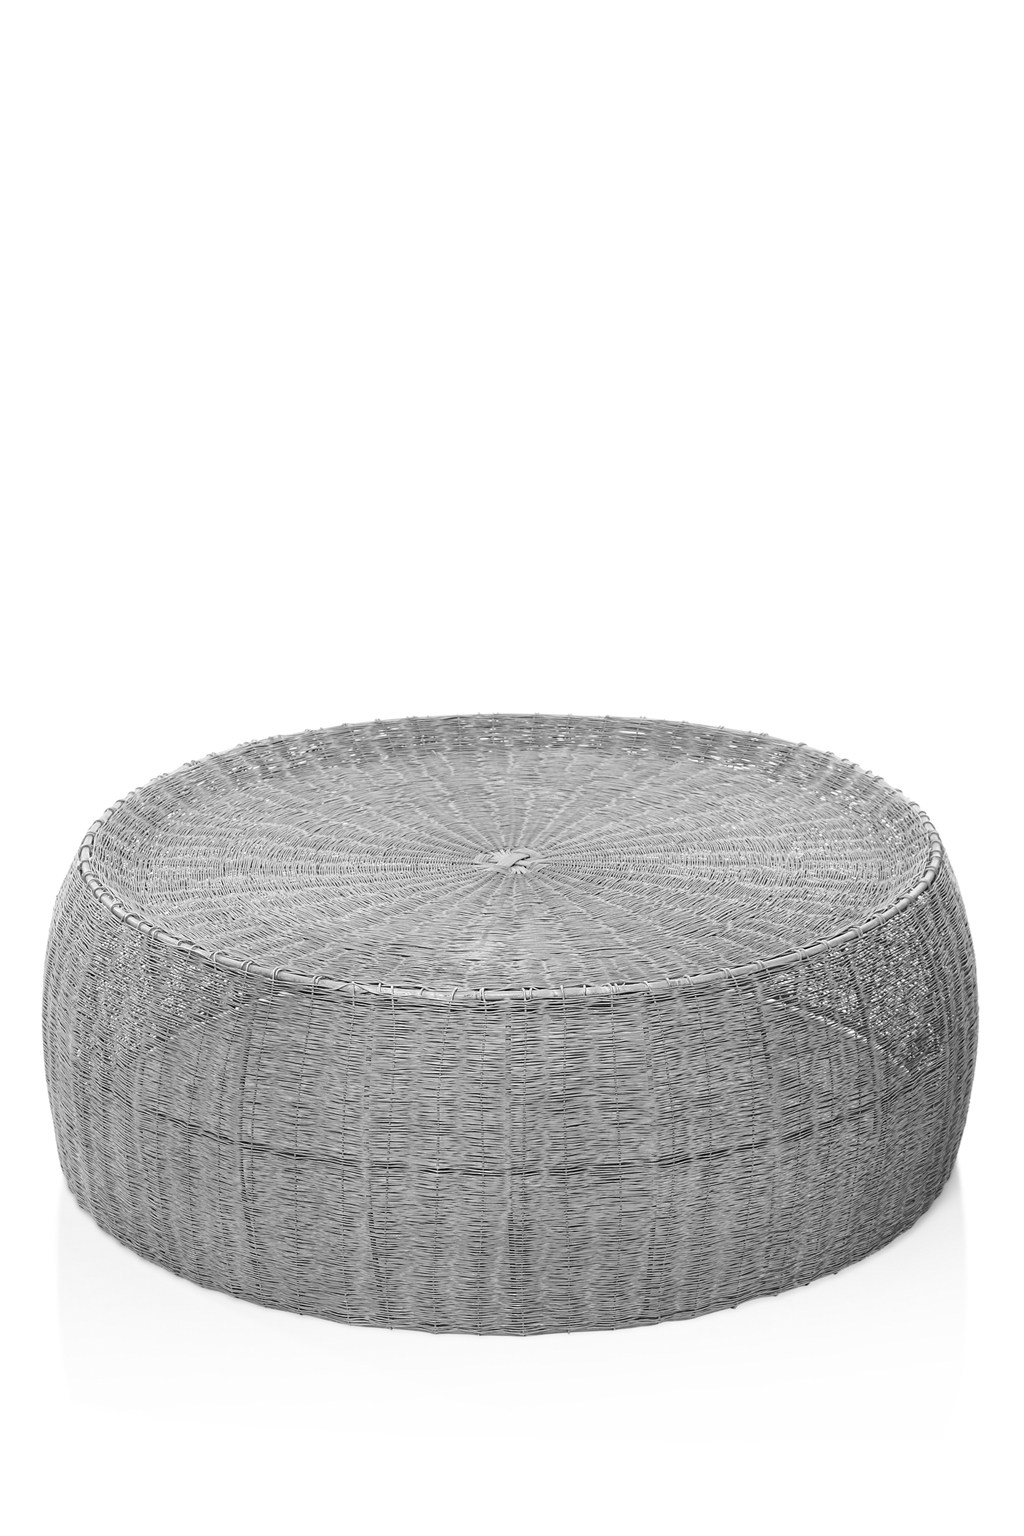 Woven Zinc Coffee Table. loading images. - Woven Zinc Coffee Table Homeware French Connection